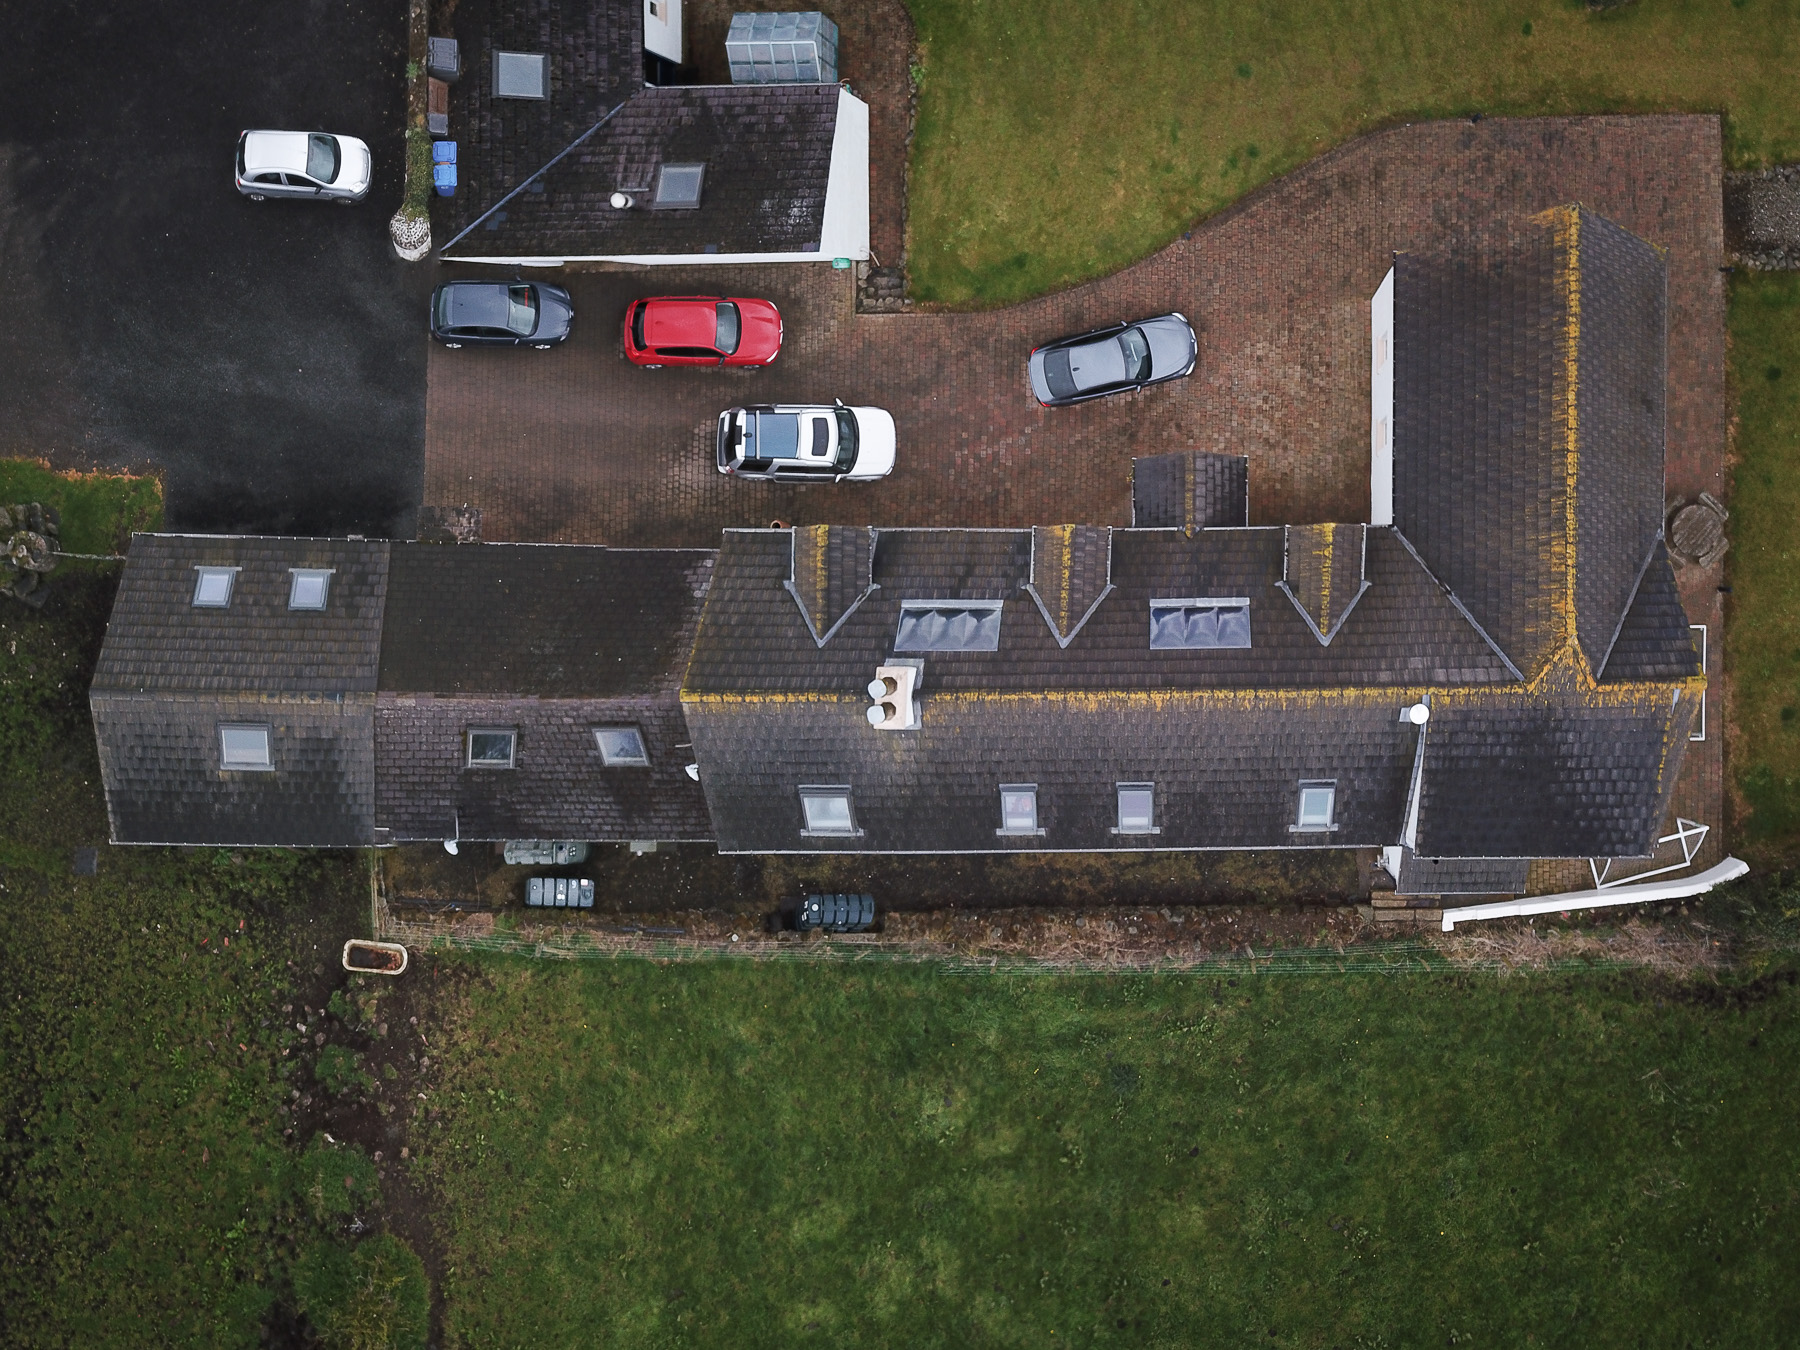 Roof Inspection - Highly Detailed Survey up to 400ft